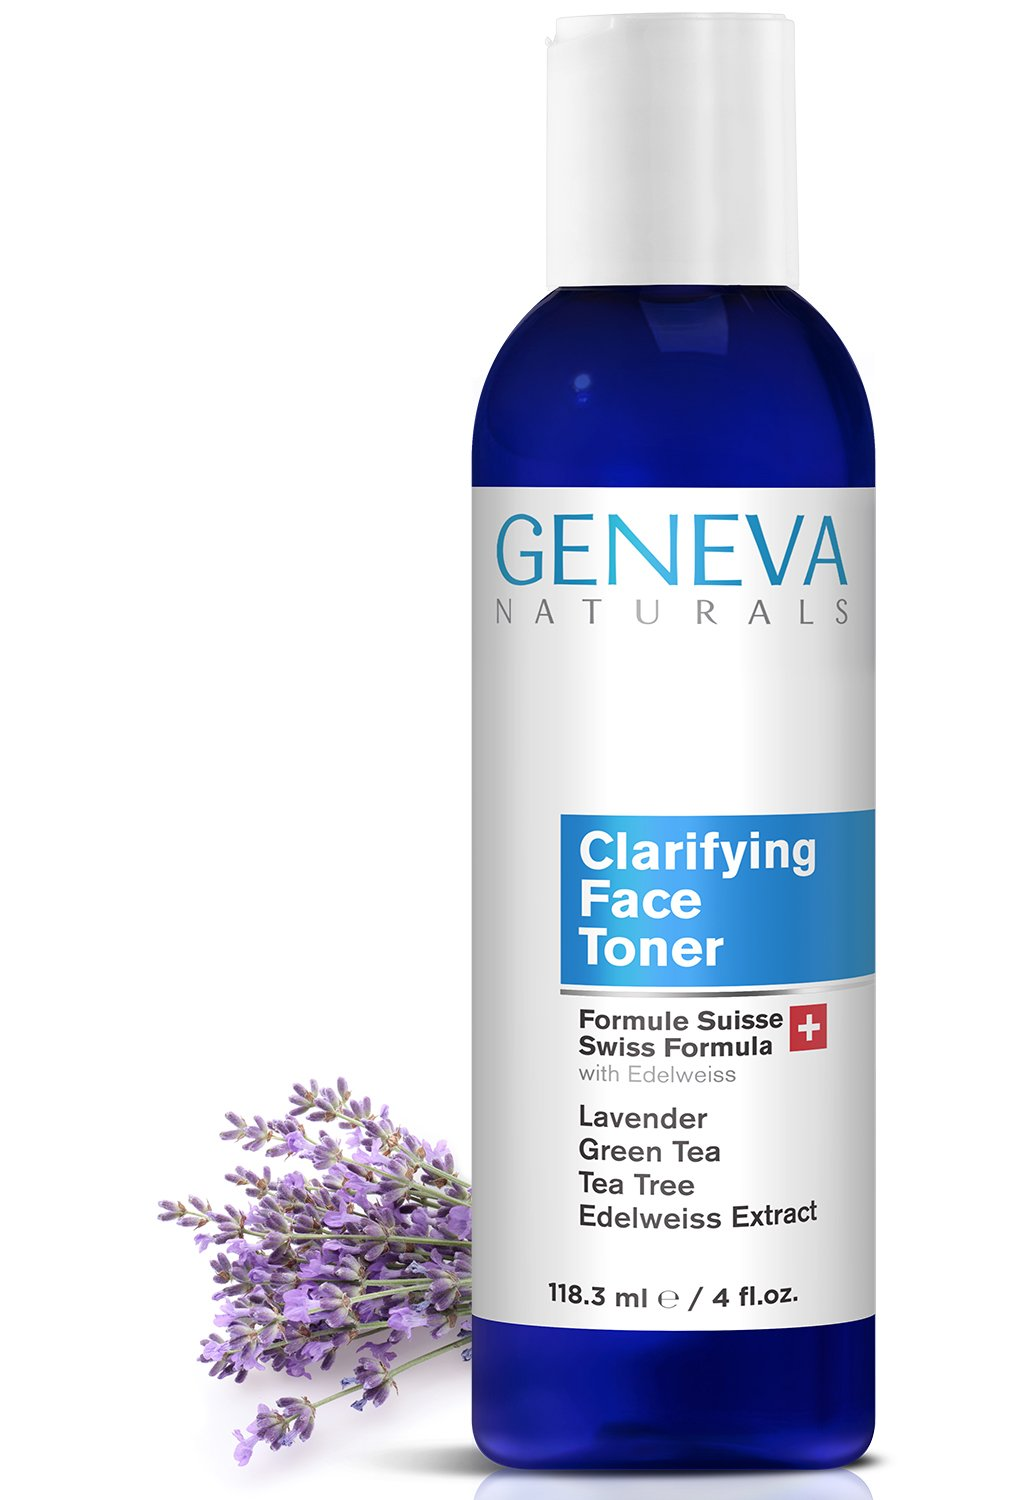 Clarifying Face Toner - Natural Swiss Anti-Aging Pore & Breakout Balance with Disinfectant - Features Lavender, Green Tea, Tea Tree Oil, and Edelweiss - Men & Women - 4oz